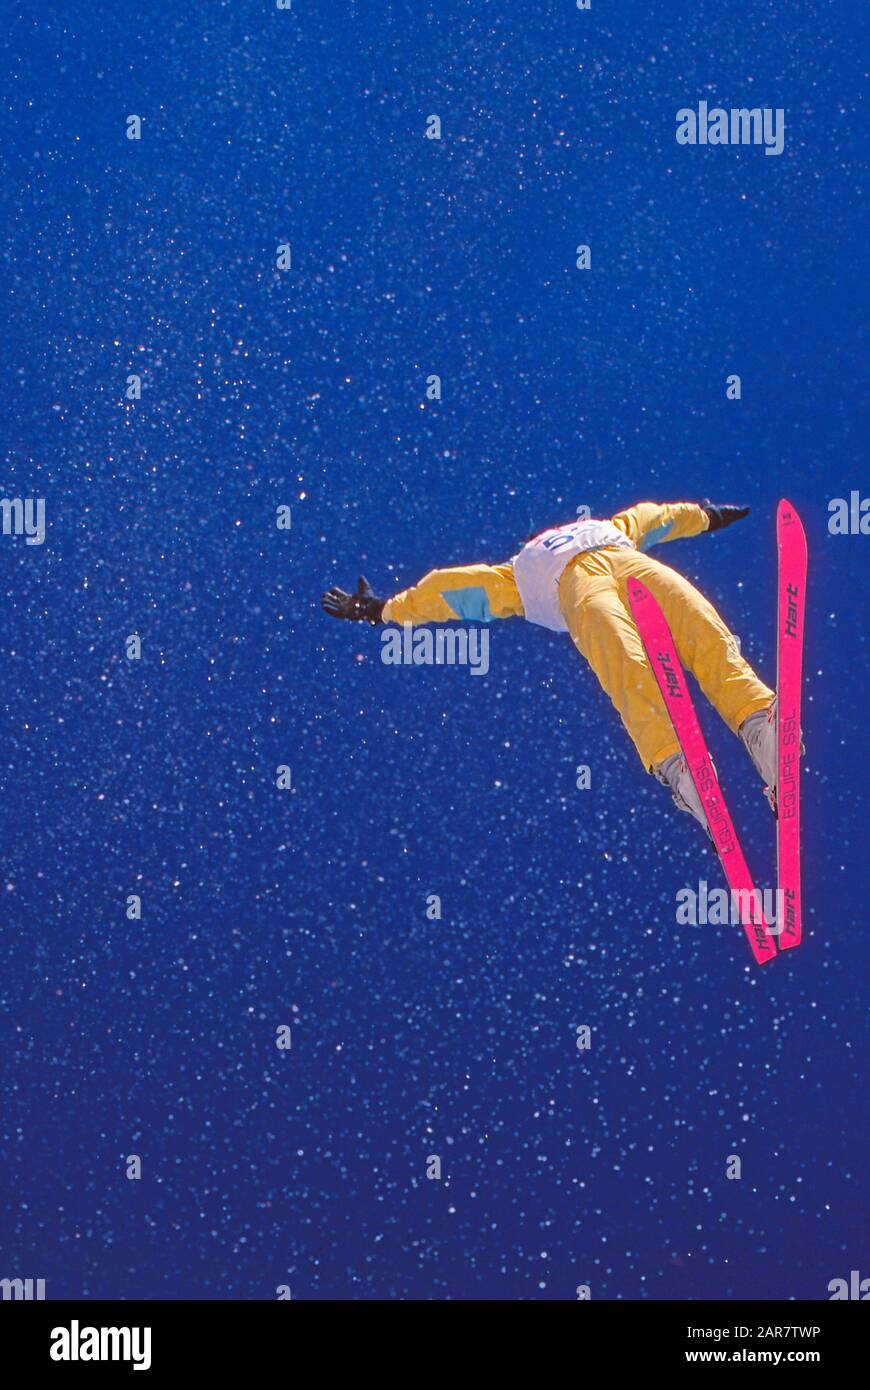 Freestyle aerial skiing or skier Stock Photo